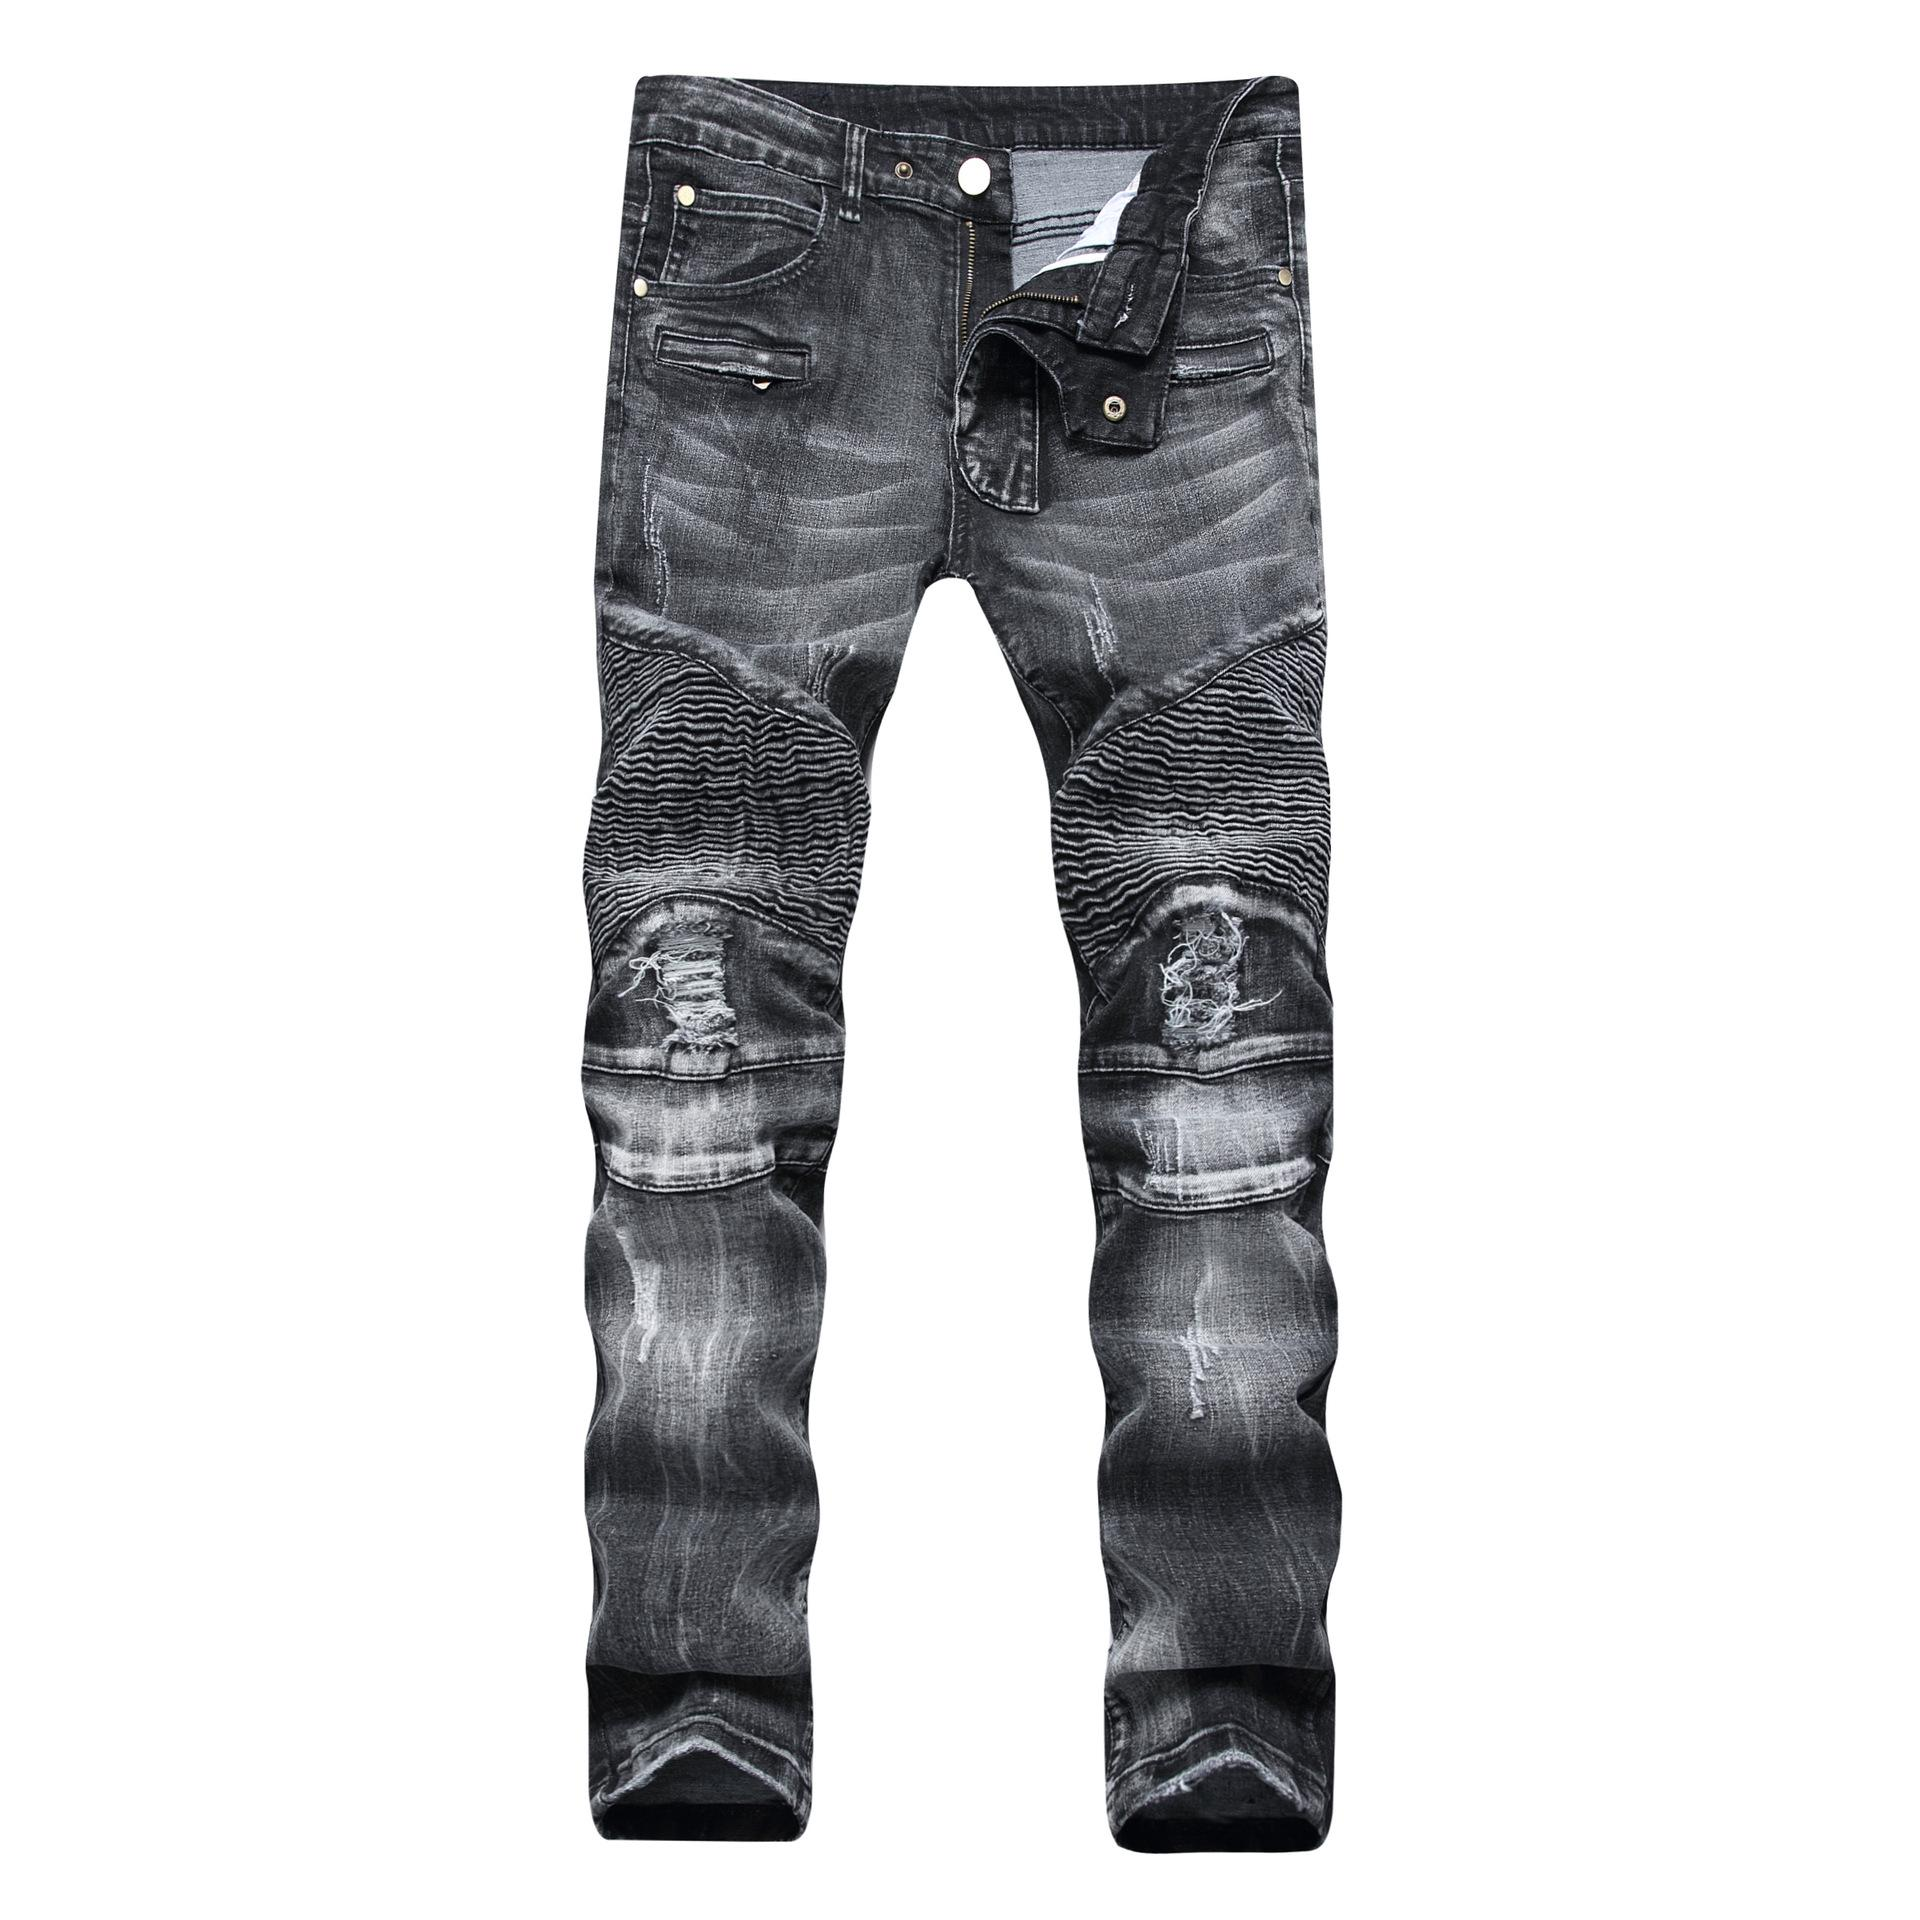 1a974aceded76 Menswear Men s Jeans Holes Jeans Grey Jeans High-street Pierced Zippers  Slimming Elastic Amazon Style Men s Trousers